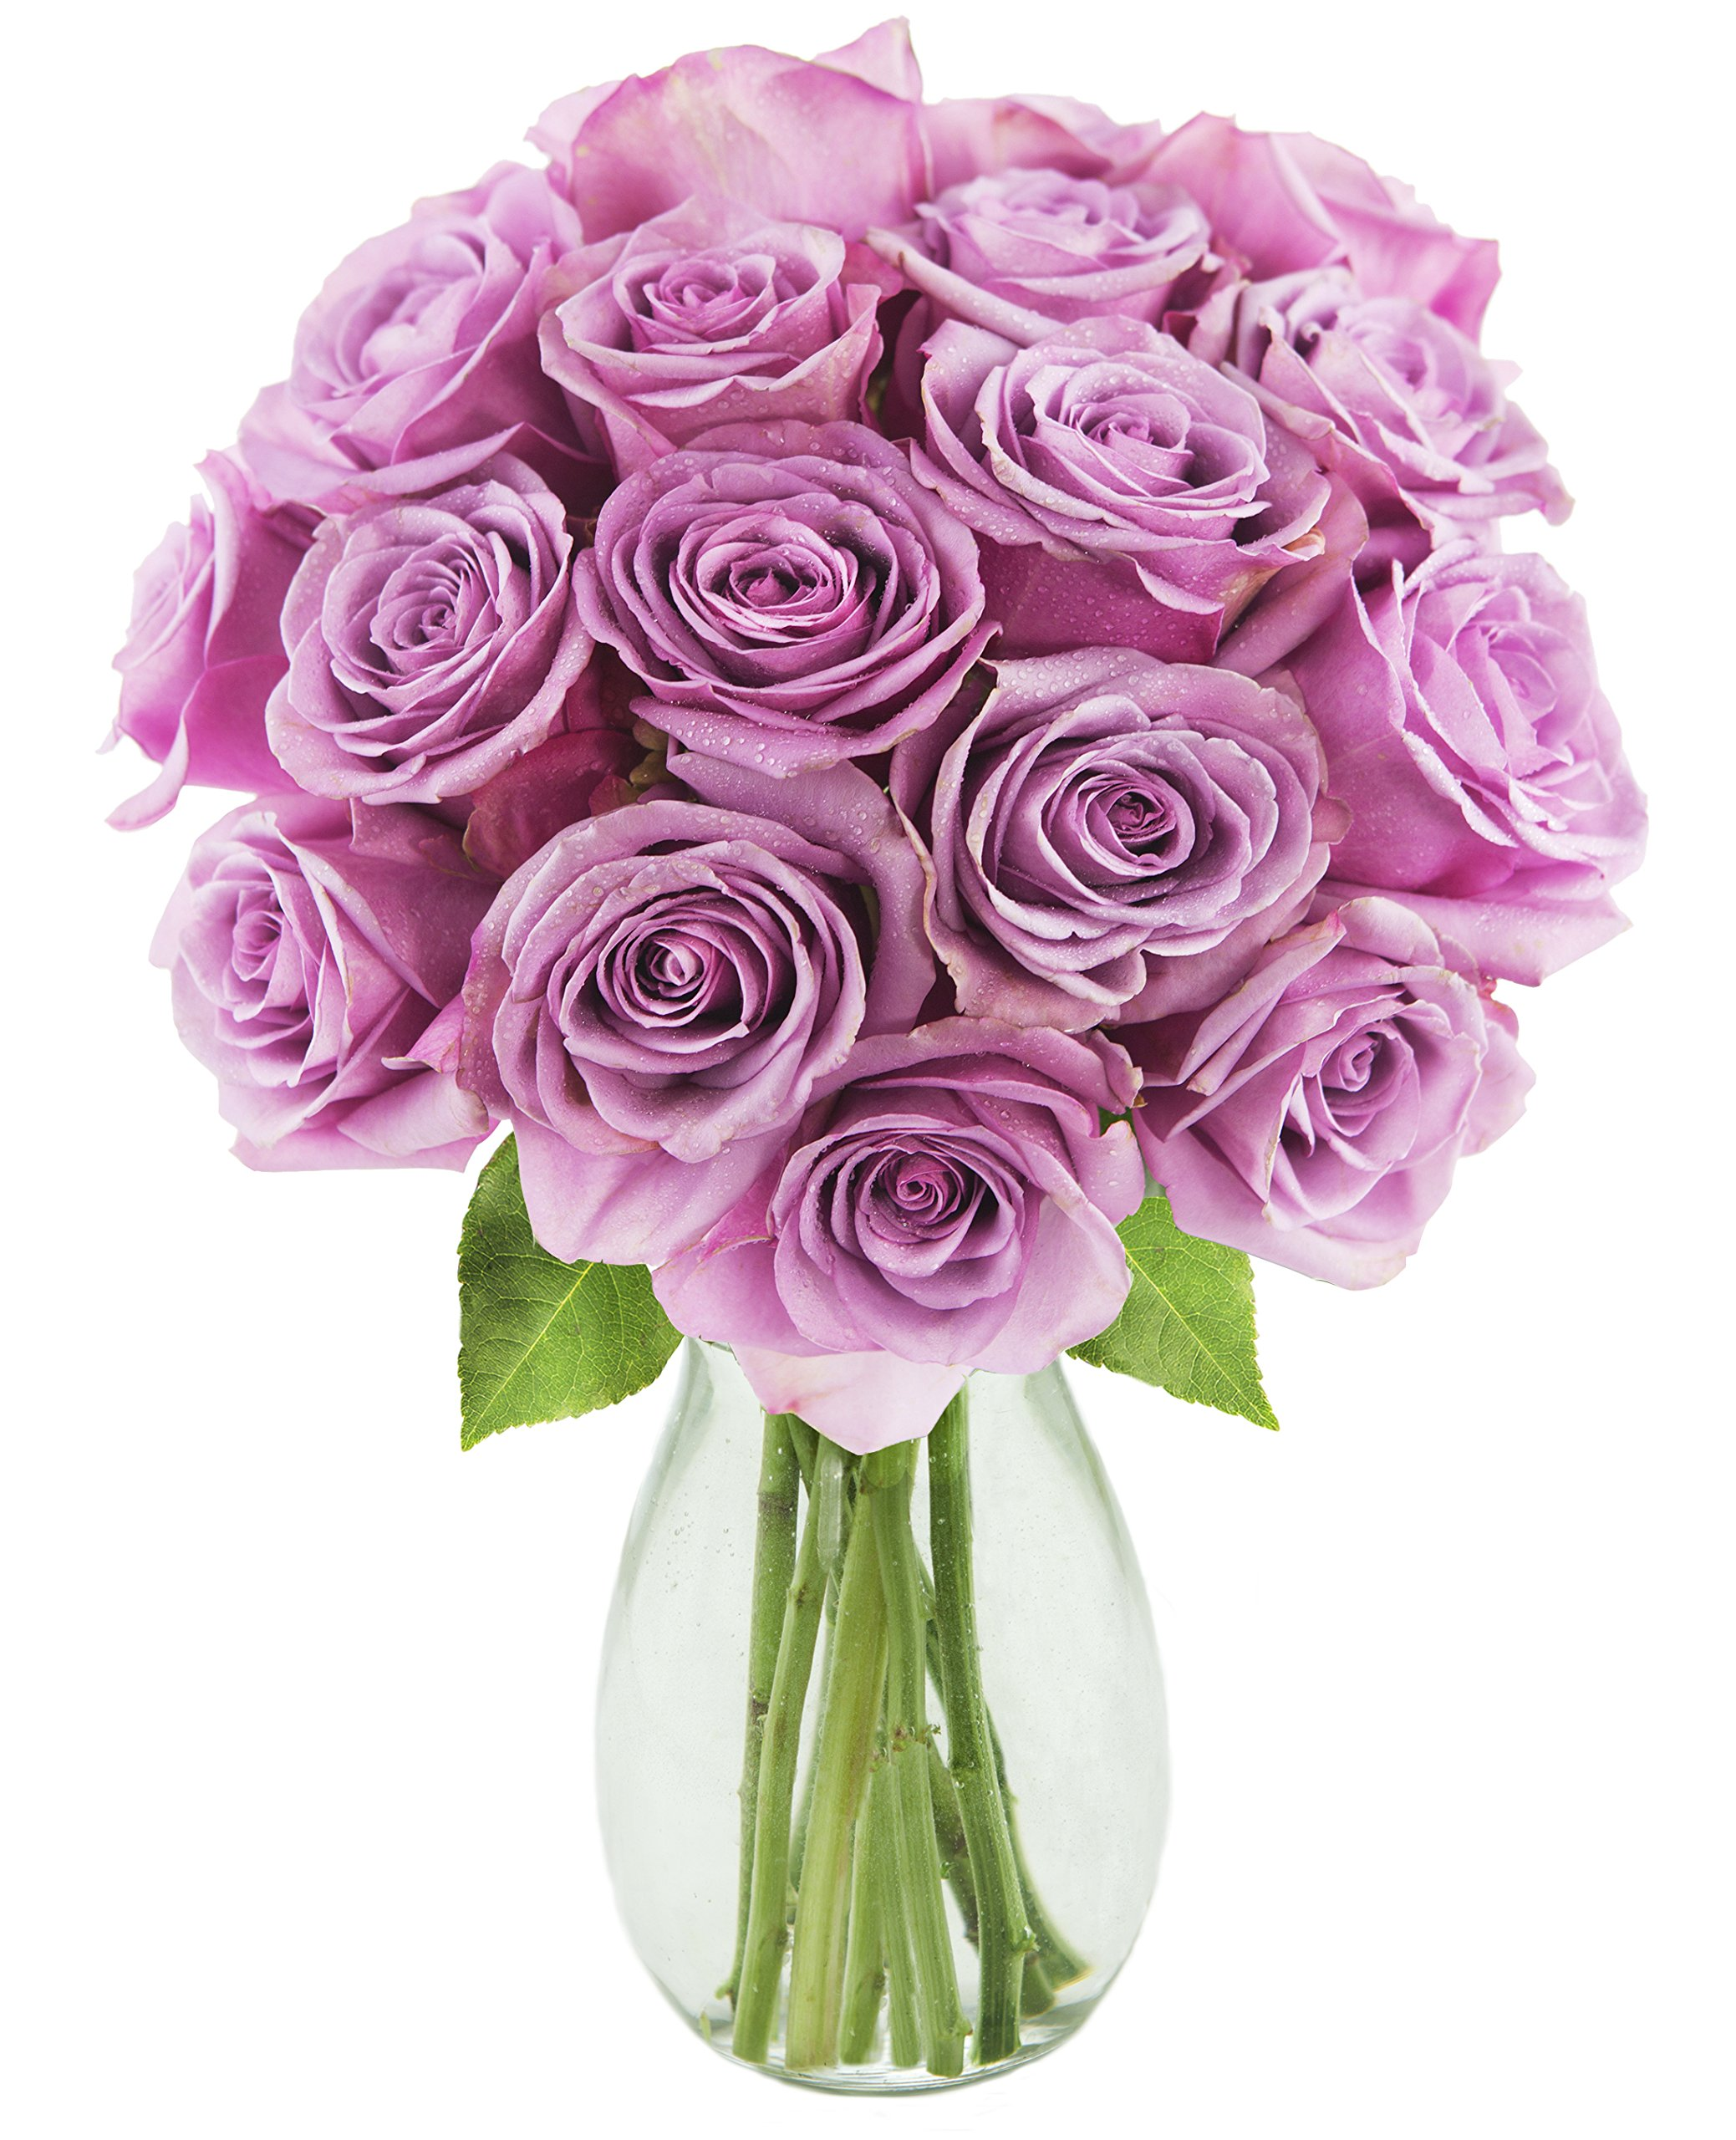 Bouquet of 18 Fresh Cut Purple Roses (Farm-Fresh, Long-Stem) with Free Vase Included